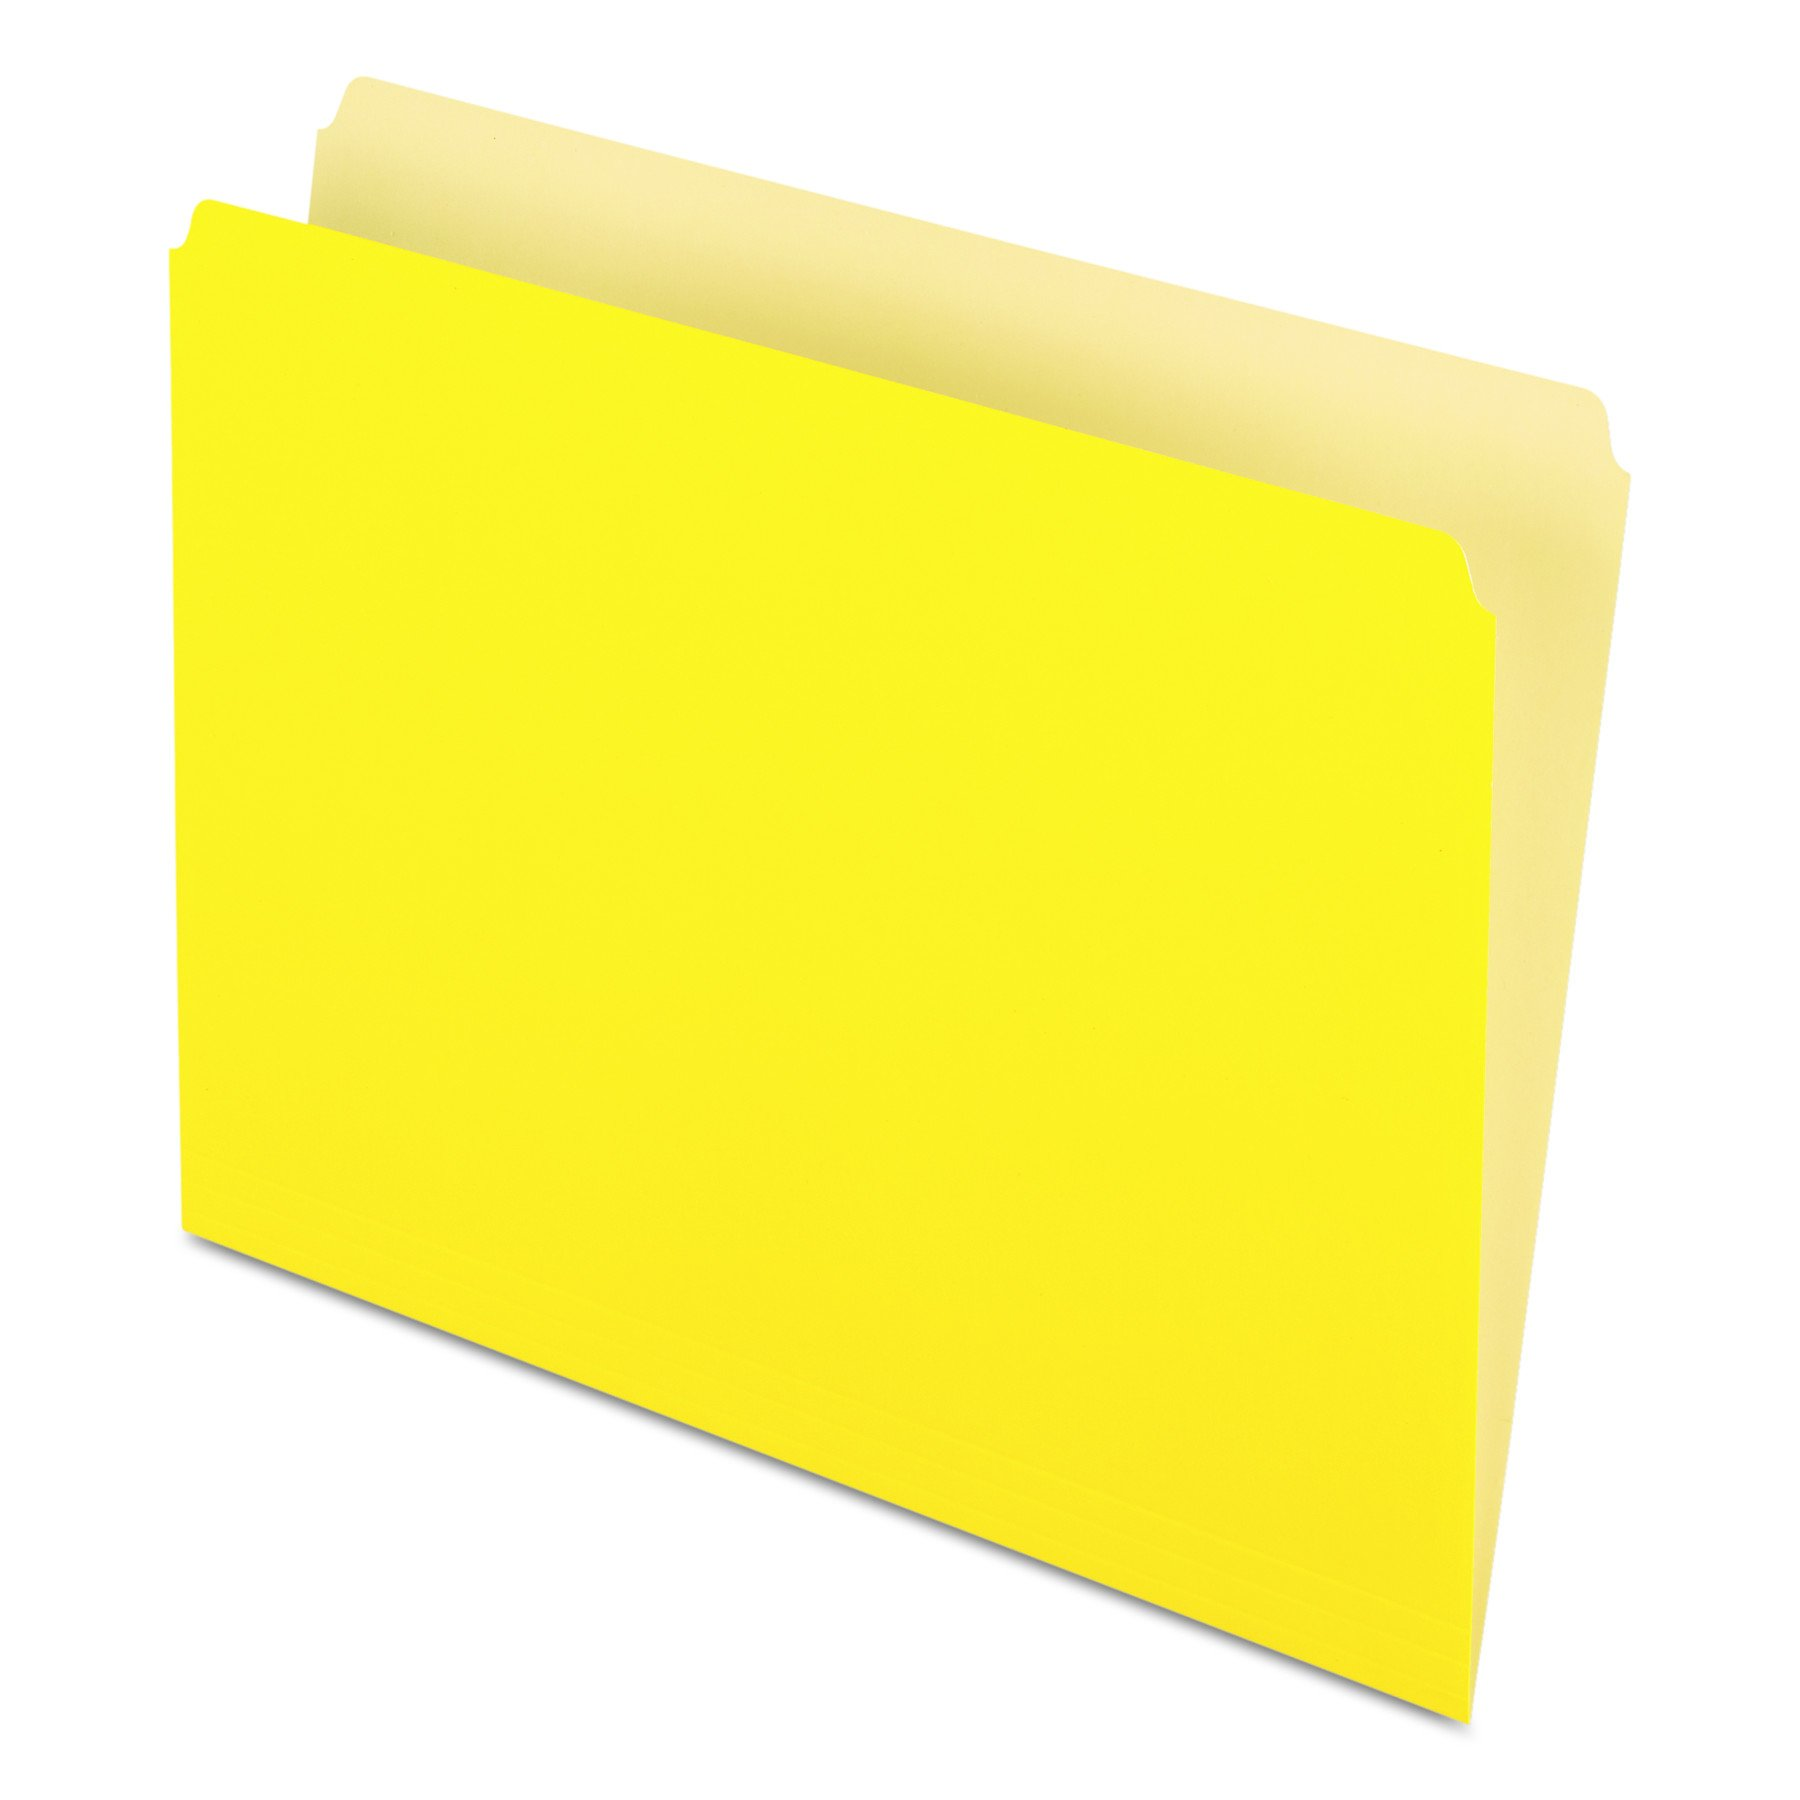 Pendaflex Two-Tone Color File Folders, Letter Size, Yellow, Straight Cut, 100/BX (152 YEL) by Pendaflex